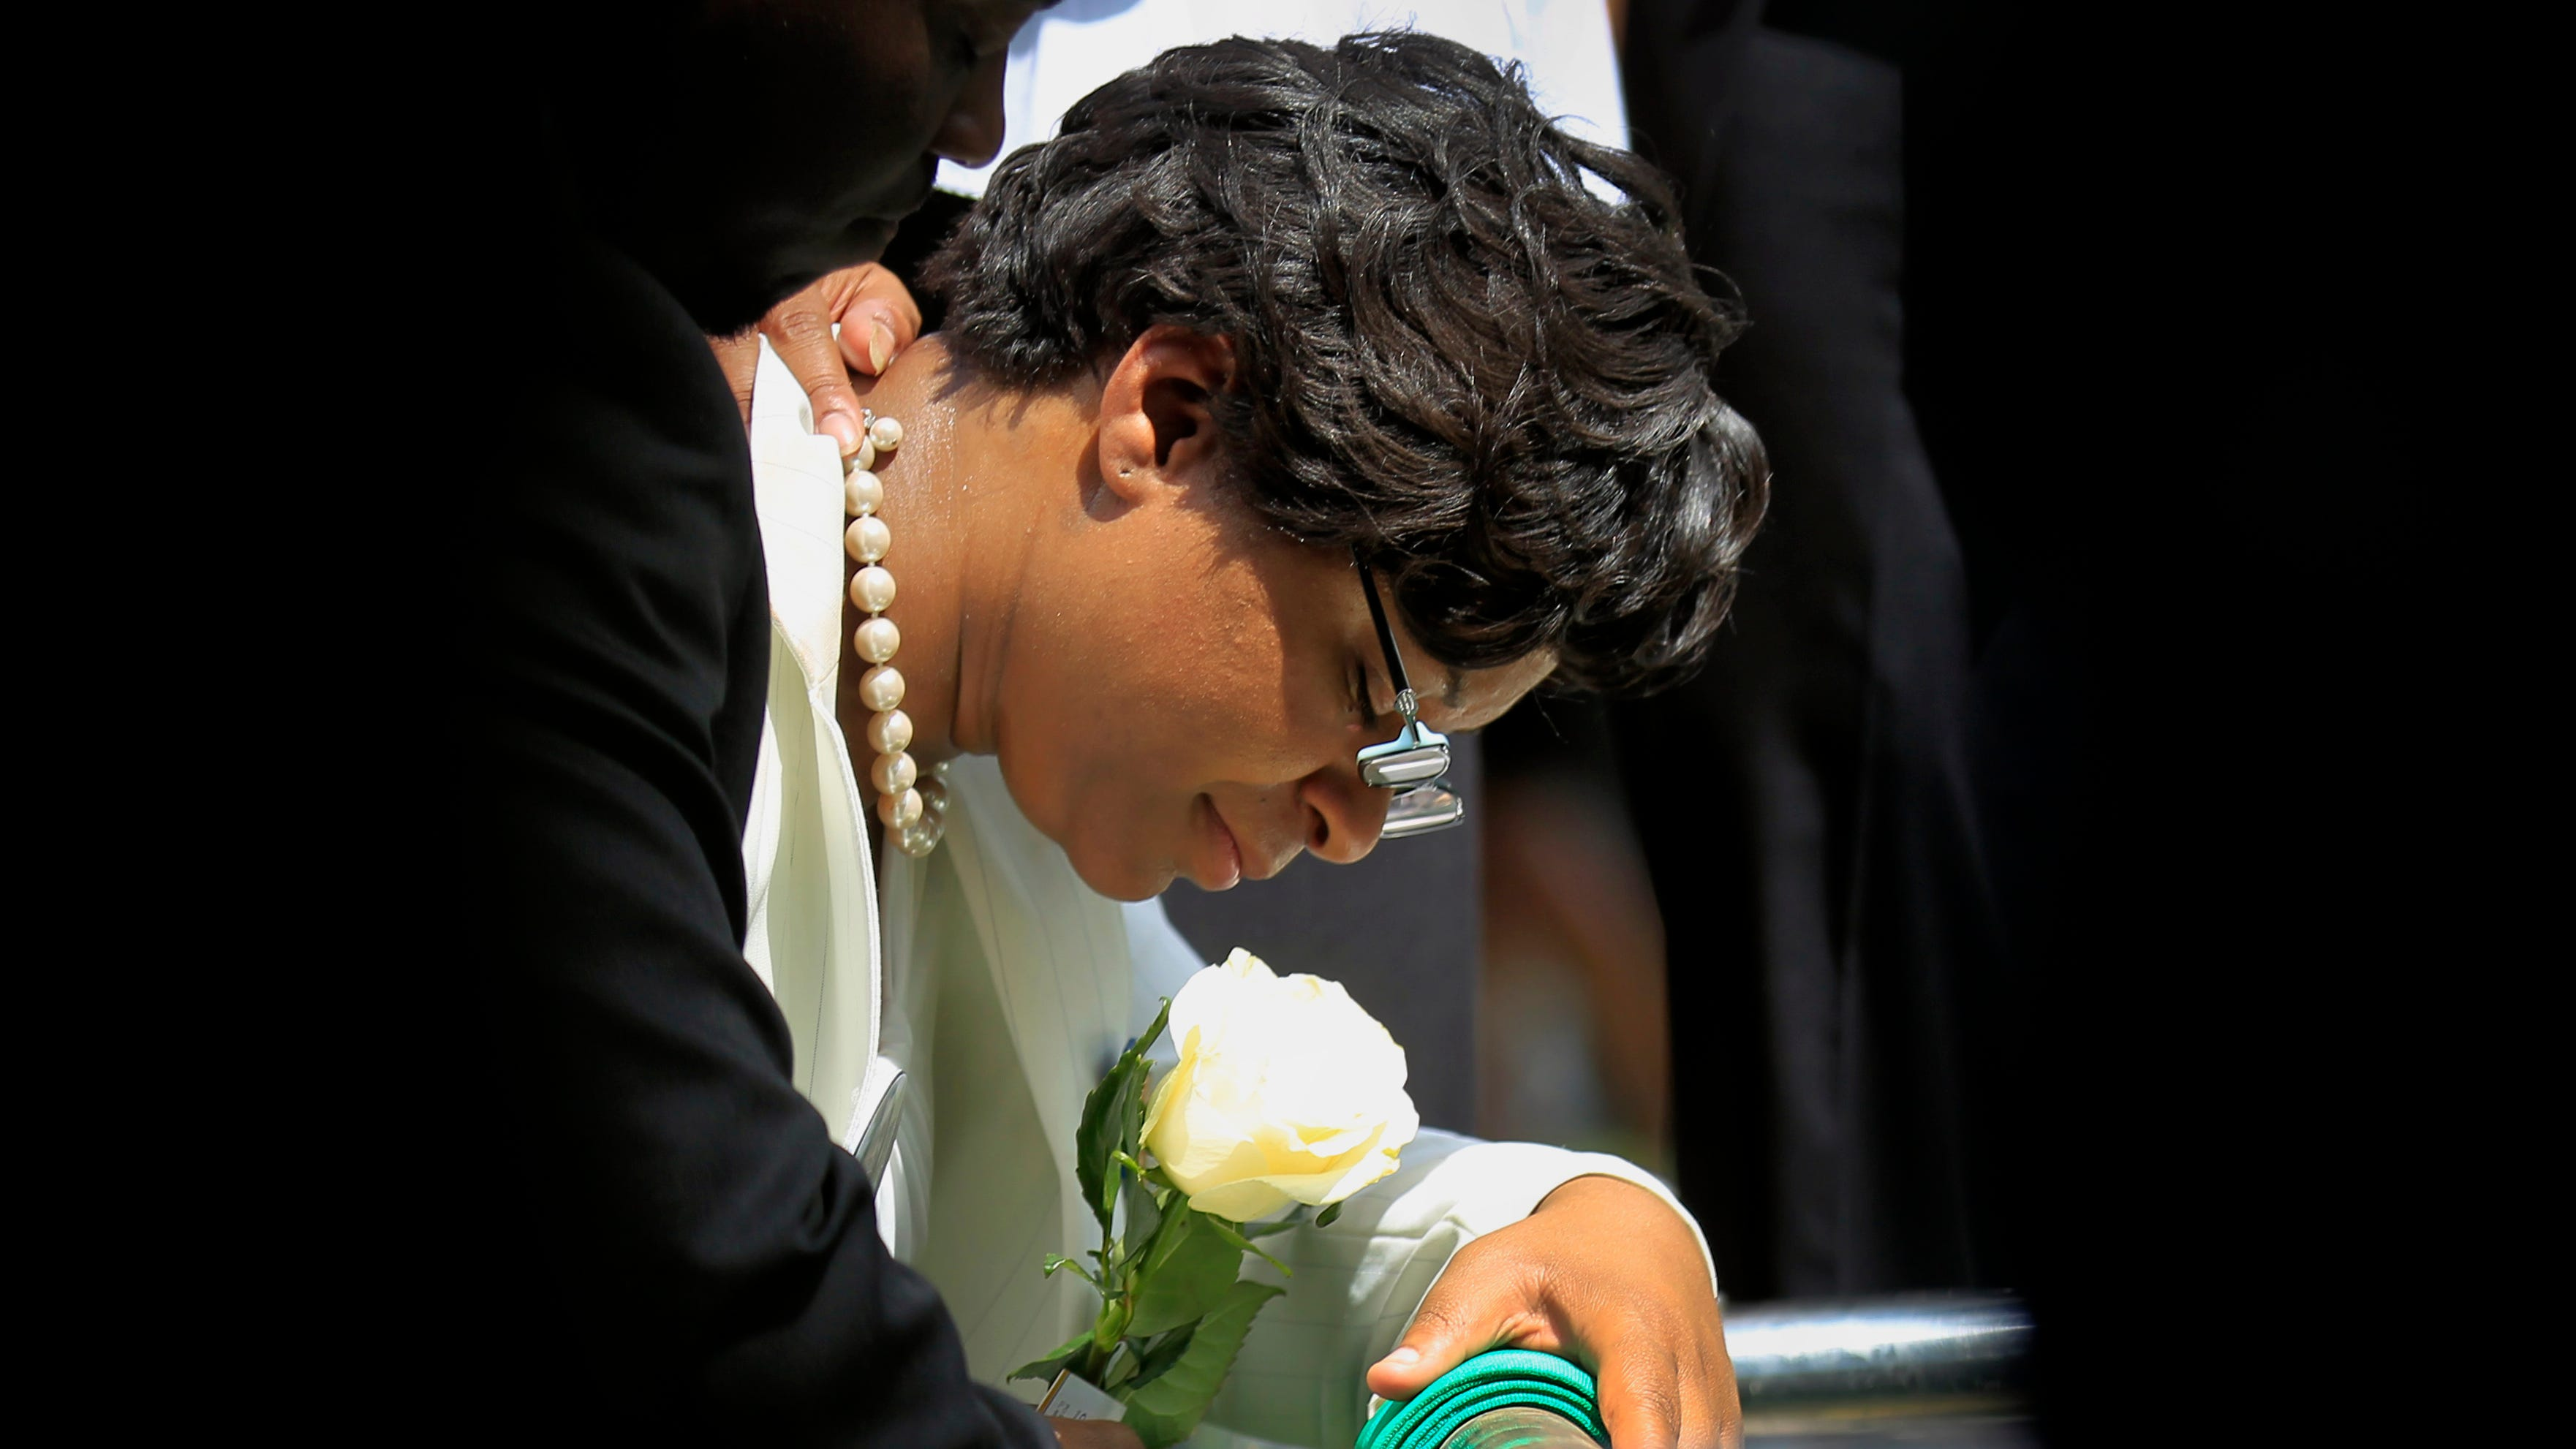 Sandra Bland's sister Sharon Cooper kneels at Bland's burial site at the Mt. Glenwood Memorial Gardens West cemetery on Saturday, July 25, 2015, in Willow Springs, Ill.